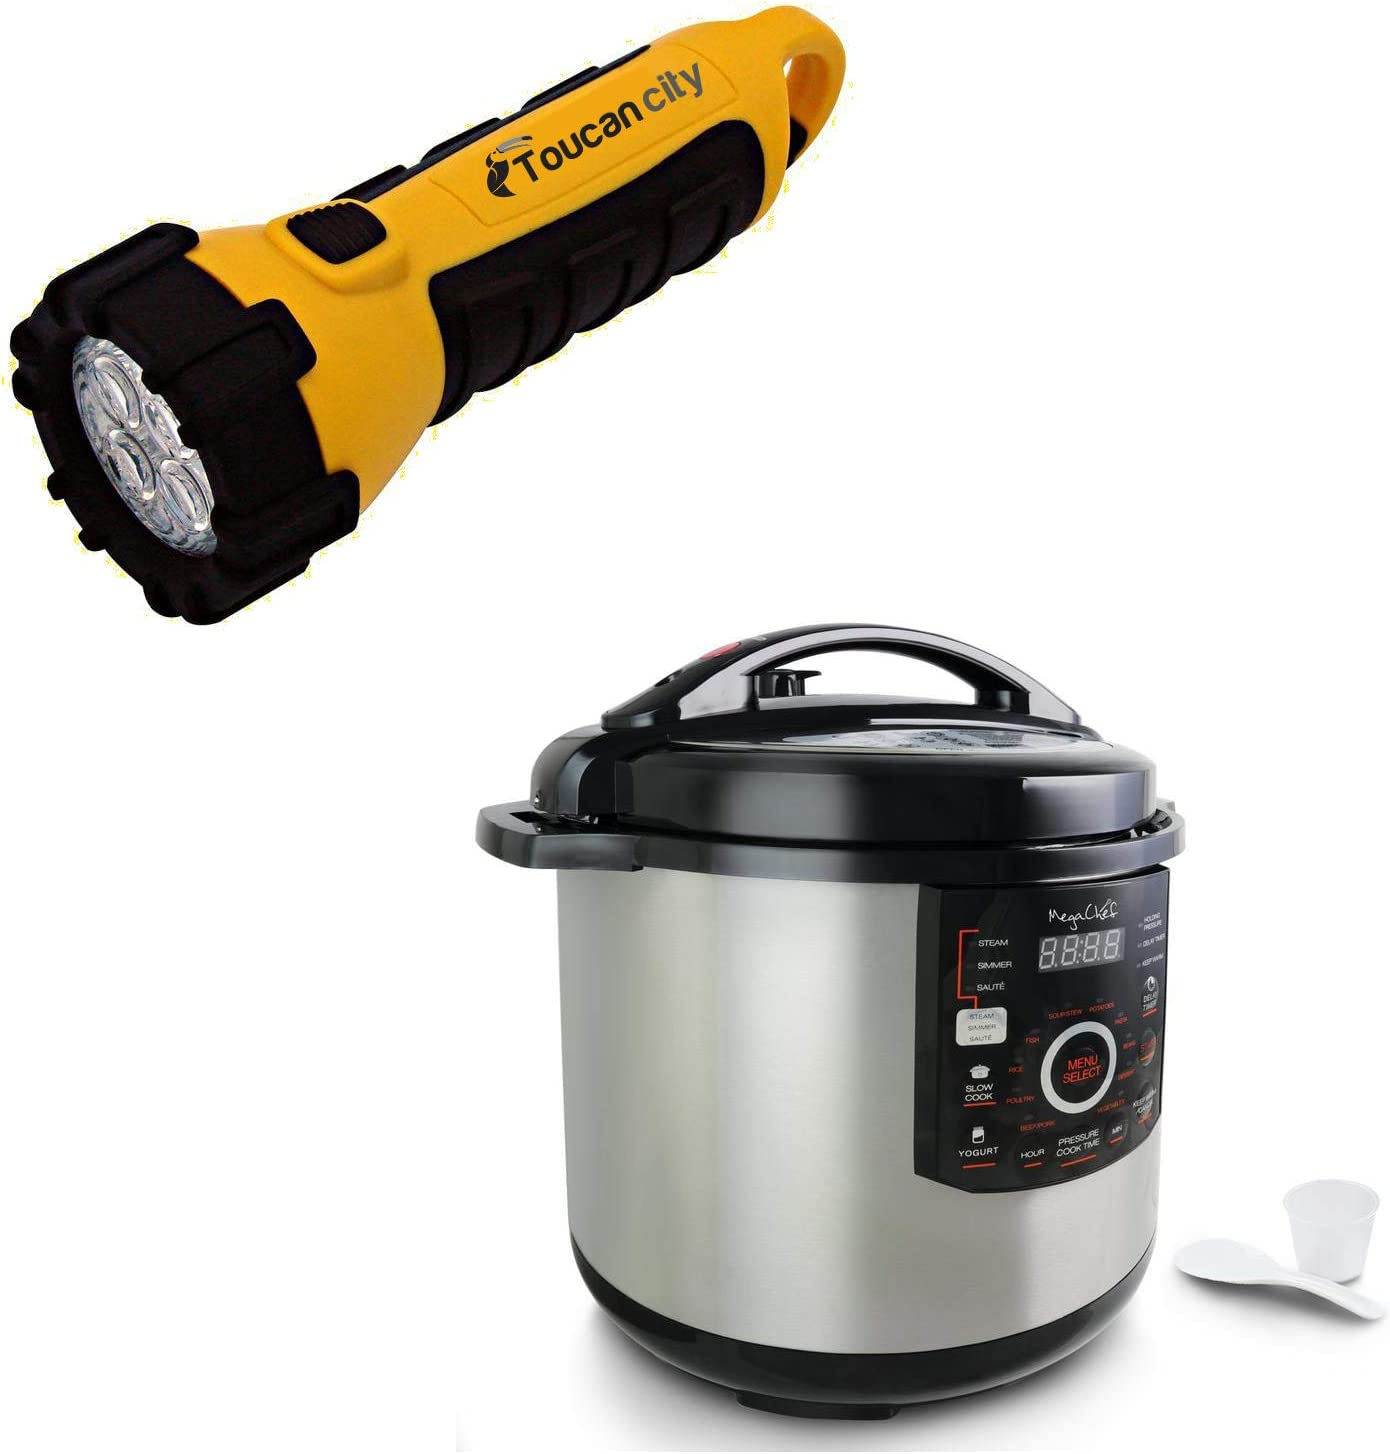 Toucan City LED Flashlight and MegaChef 12 Qt. Black and Silver Electric Pressure Cooker with Automatic Shut-Off and Keep Warm Setting 985110831M